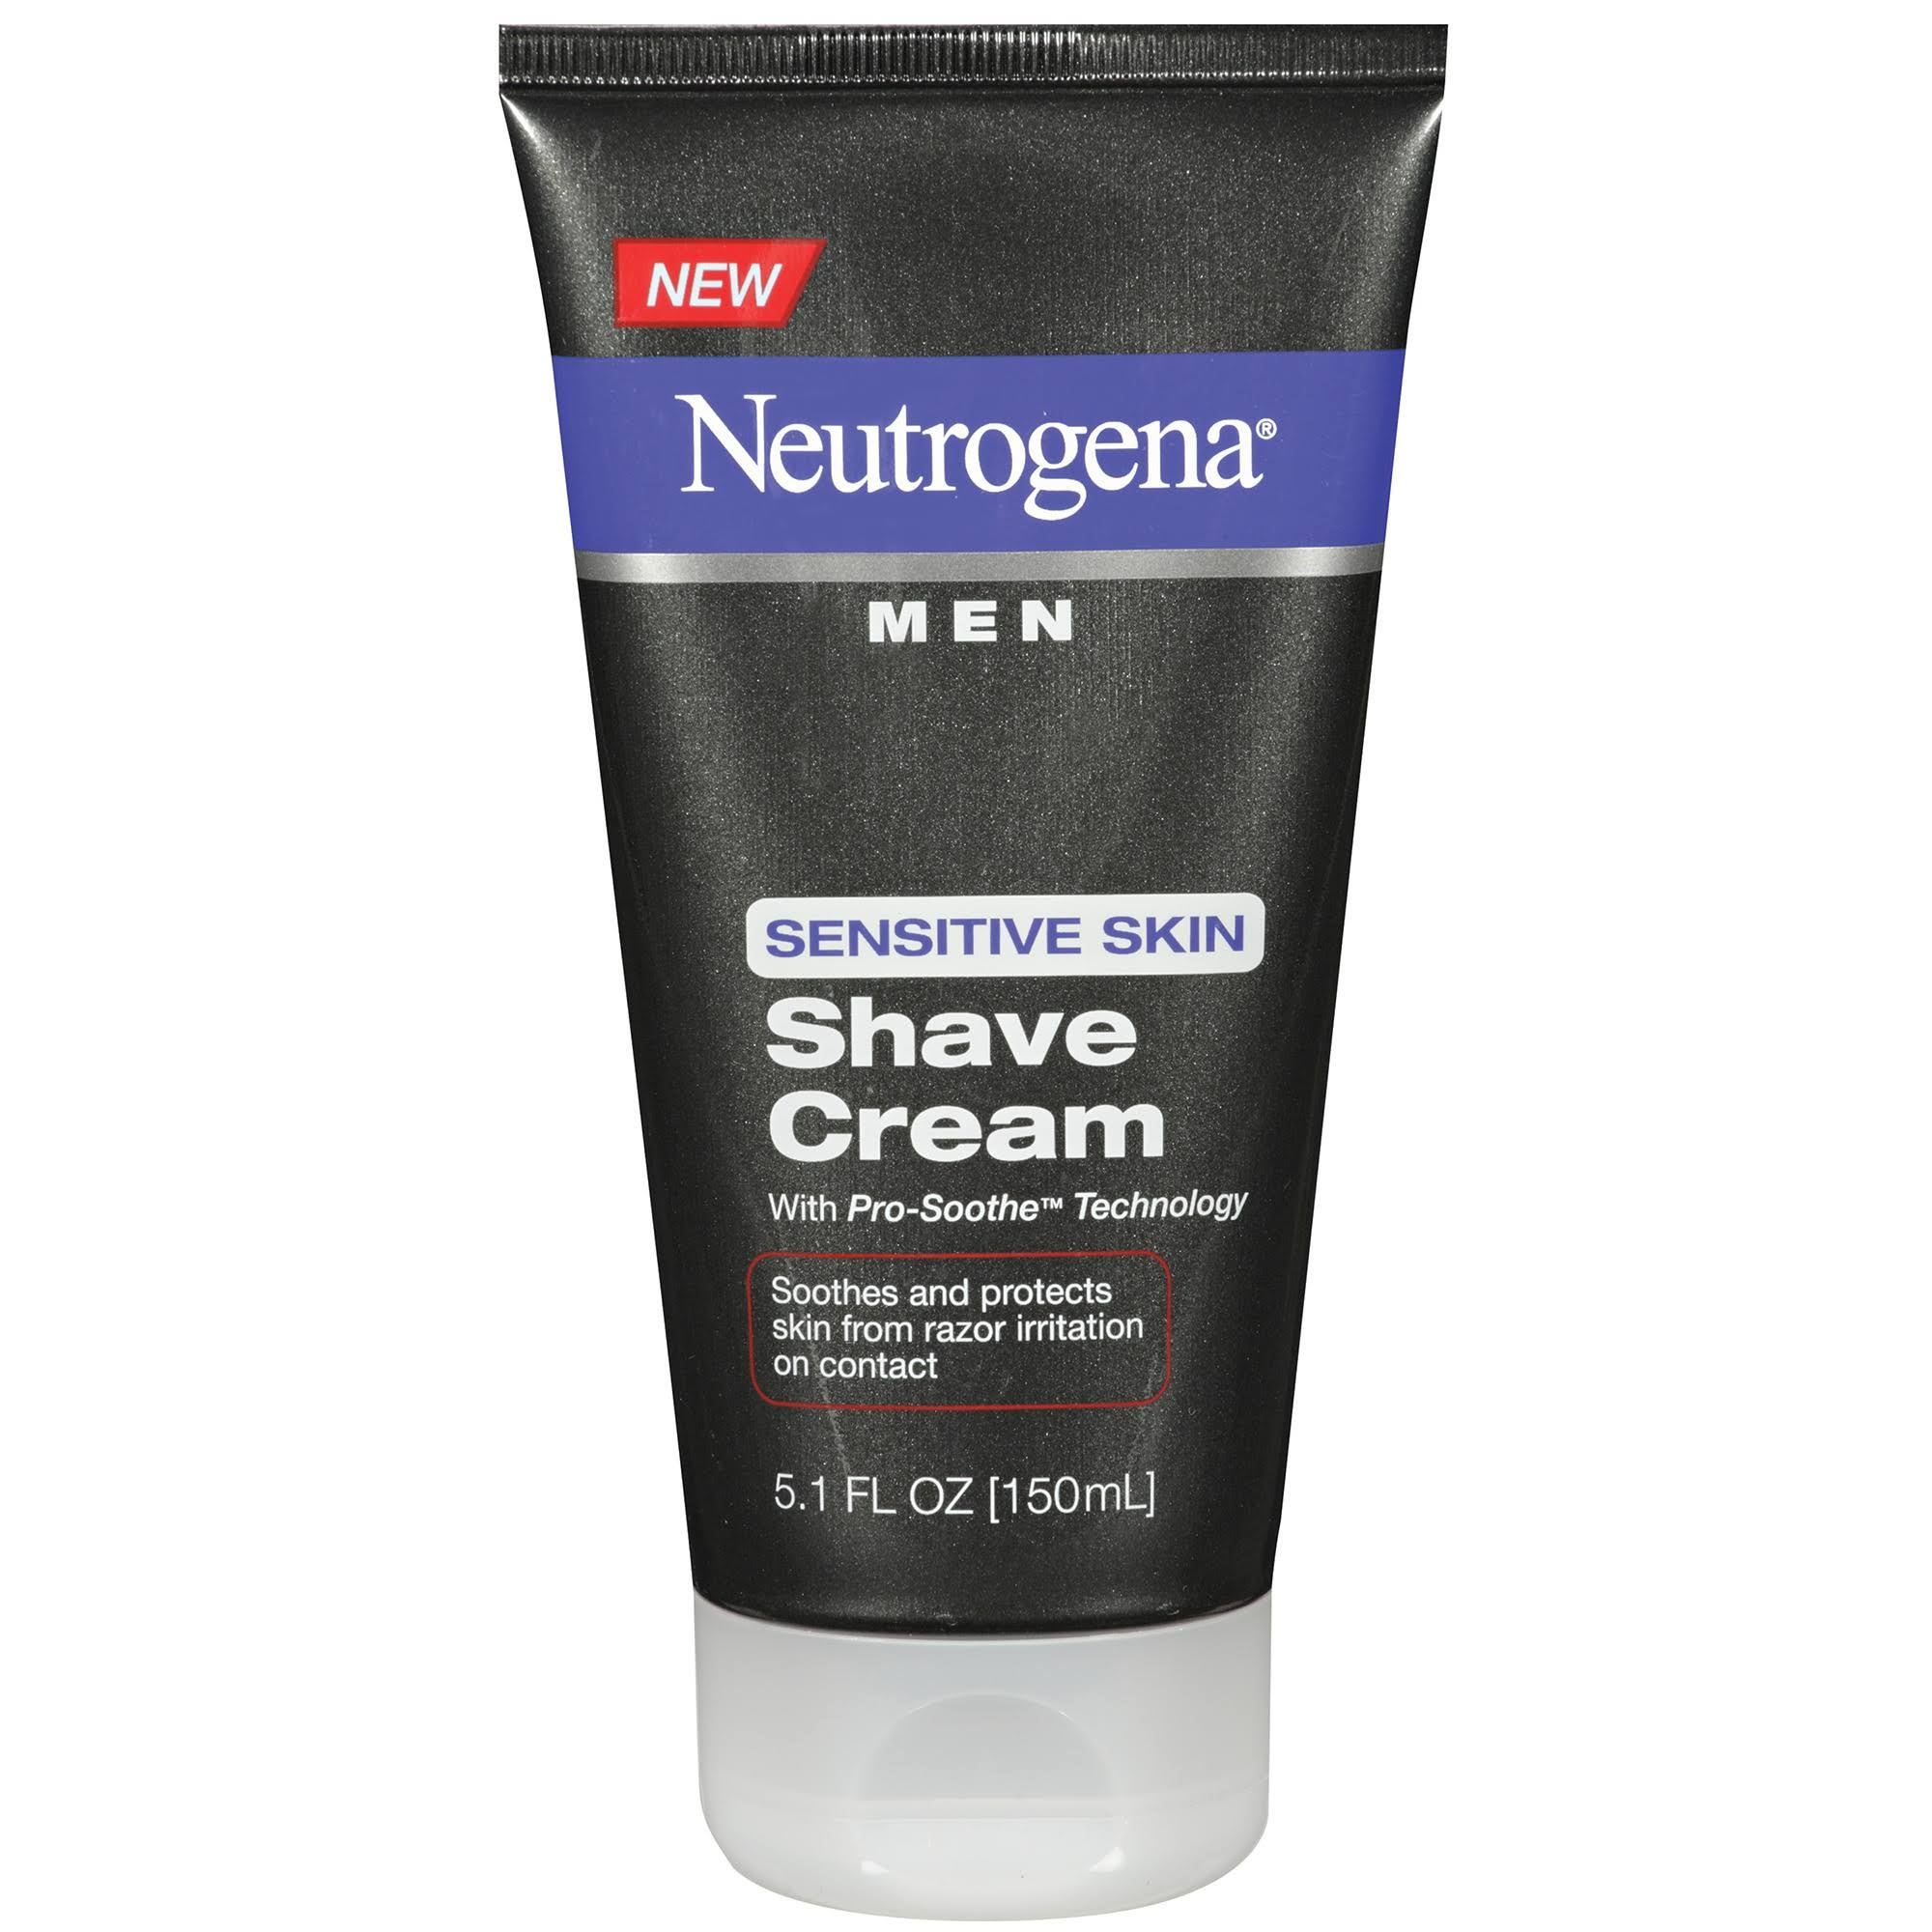 Neutrogena Men Sensitive Skin Shave Cream - 150ml